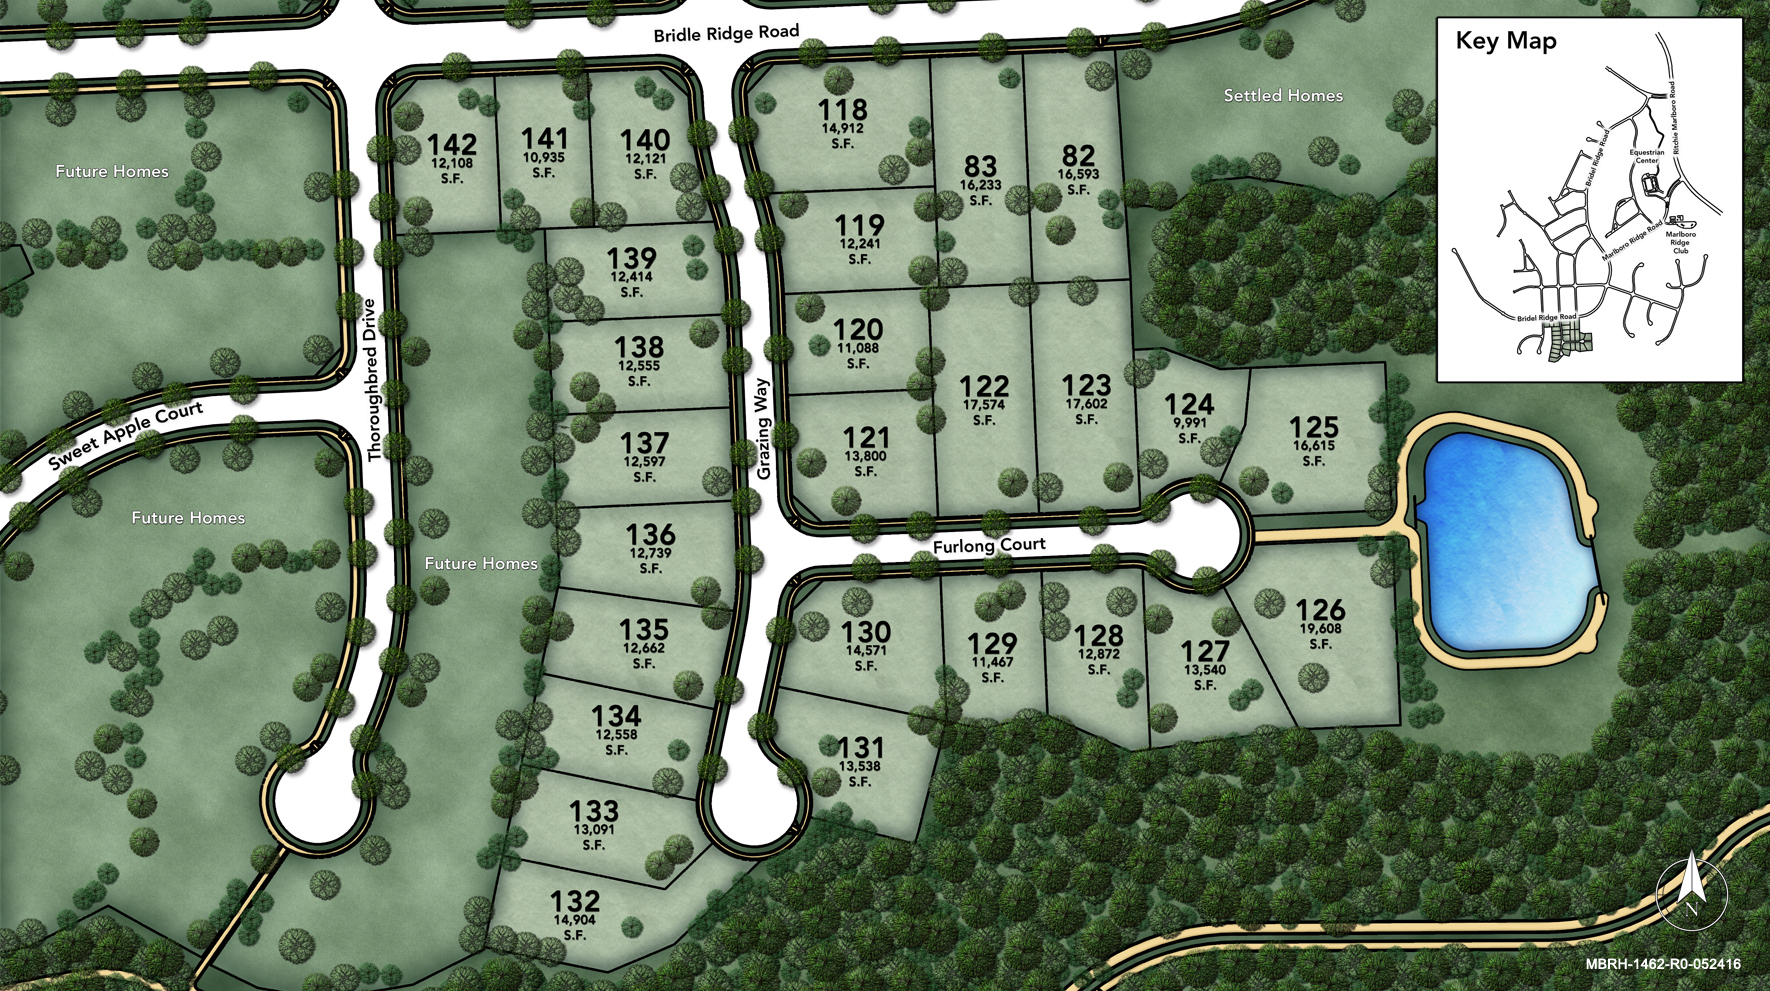 Marlboro Ridge - The Hunt Site Plan II